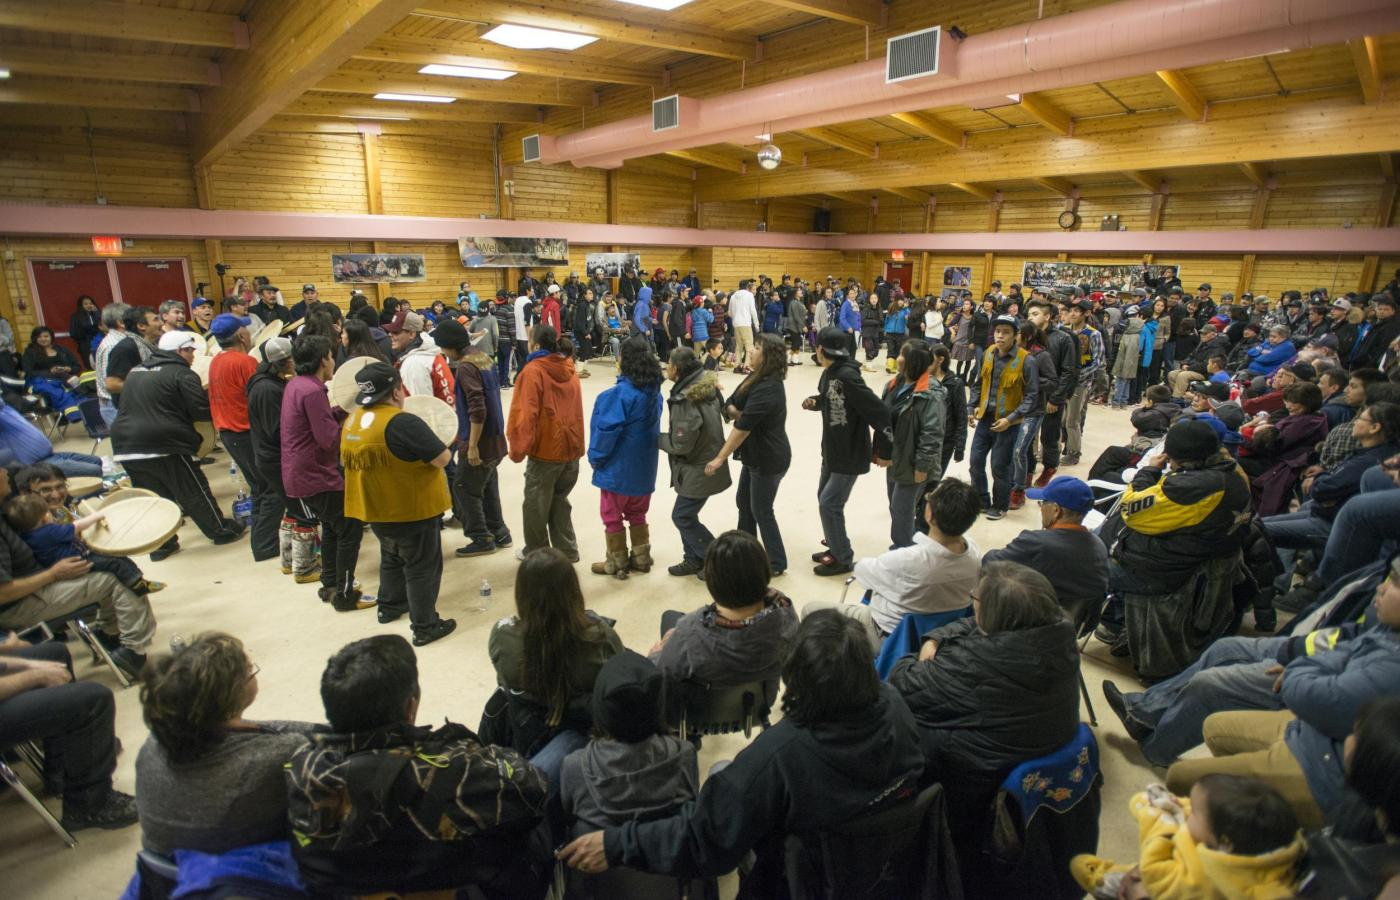 Dene drum circle in Deline